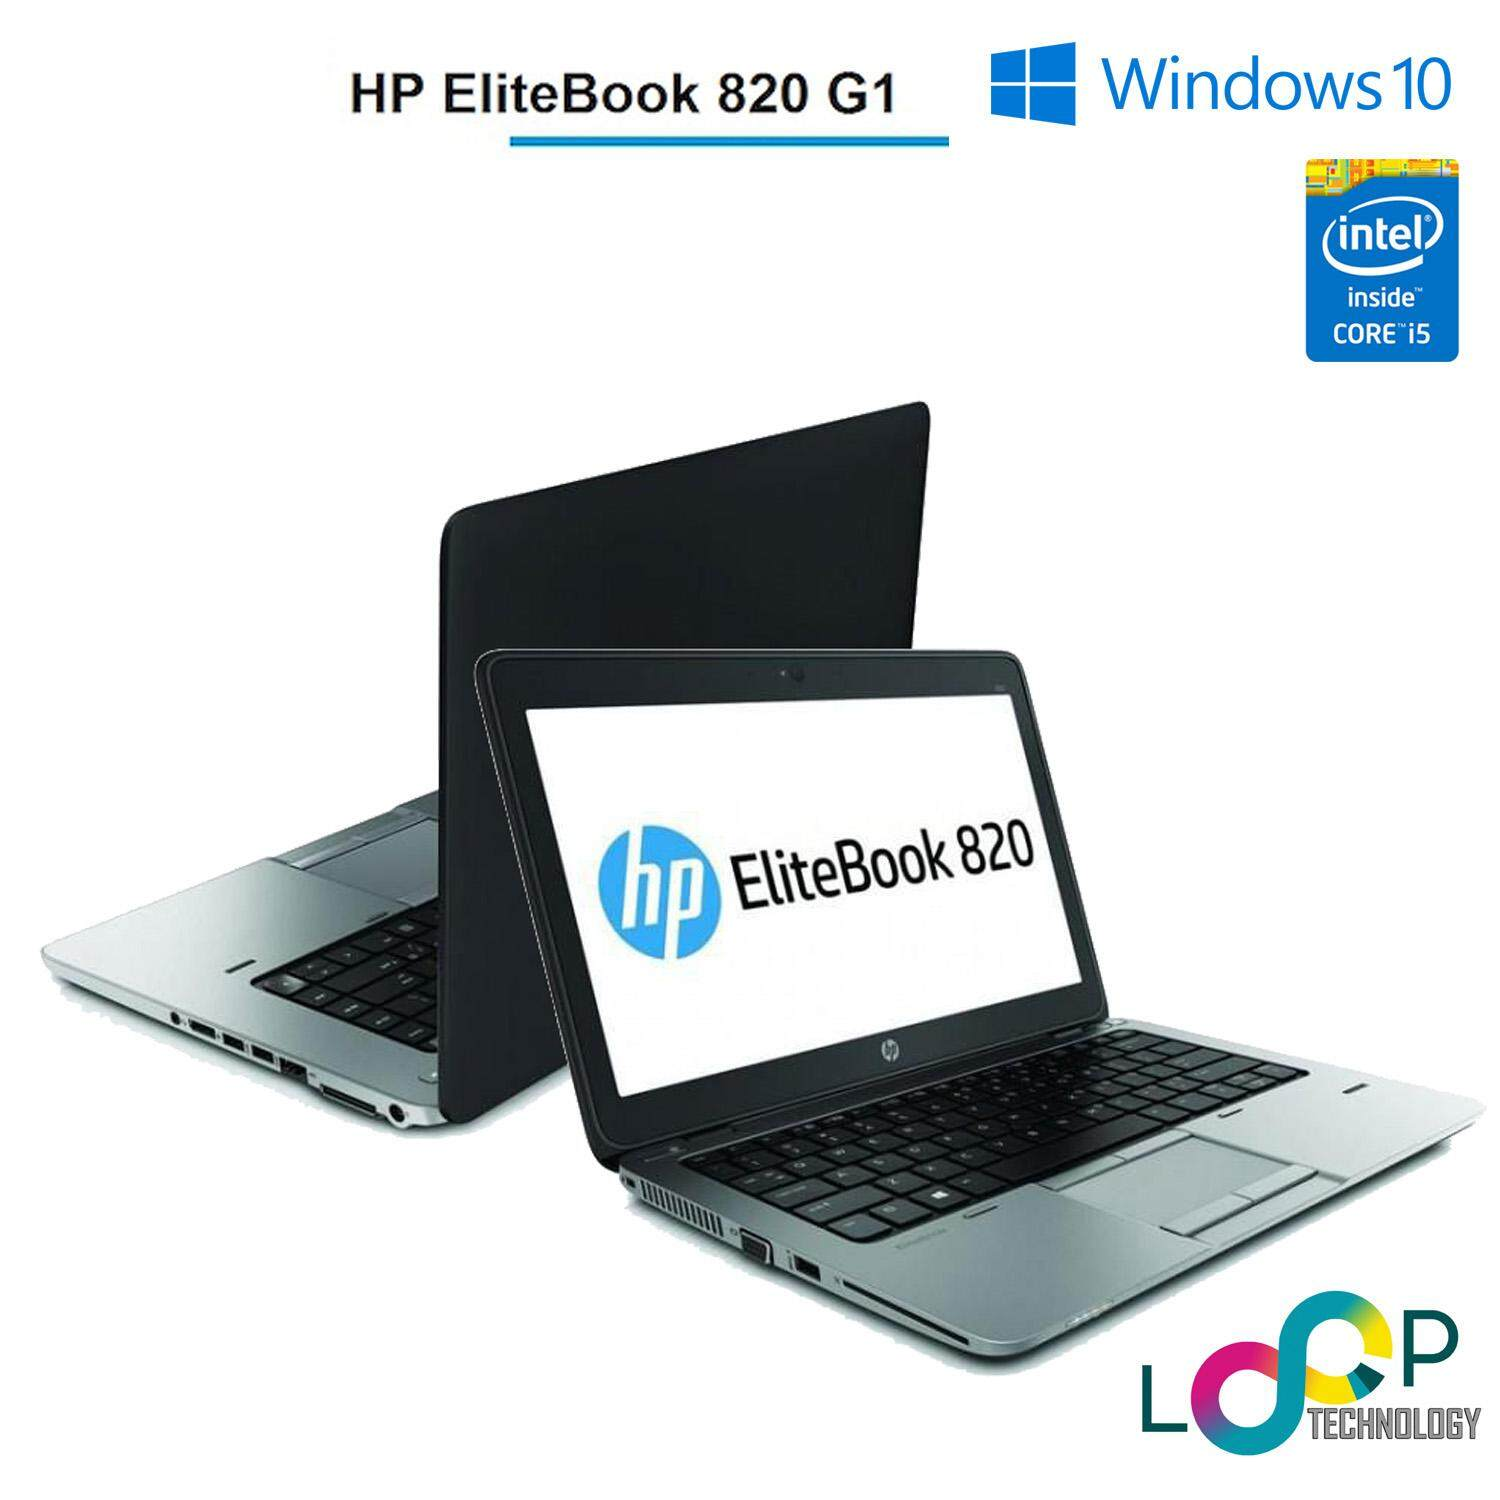 HP EliteBook 820 G1 - 12.5 - Core i5 -v-Pro 4300U - 4 GB RAM - 500 GB STORAGE (FACTORY REBUILD) Malaysia